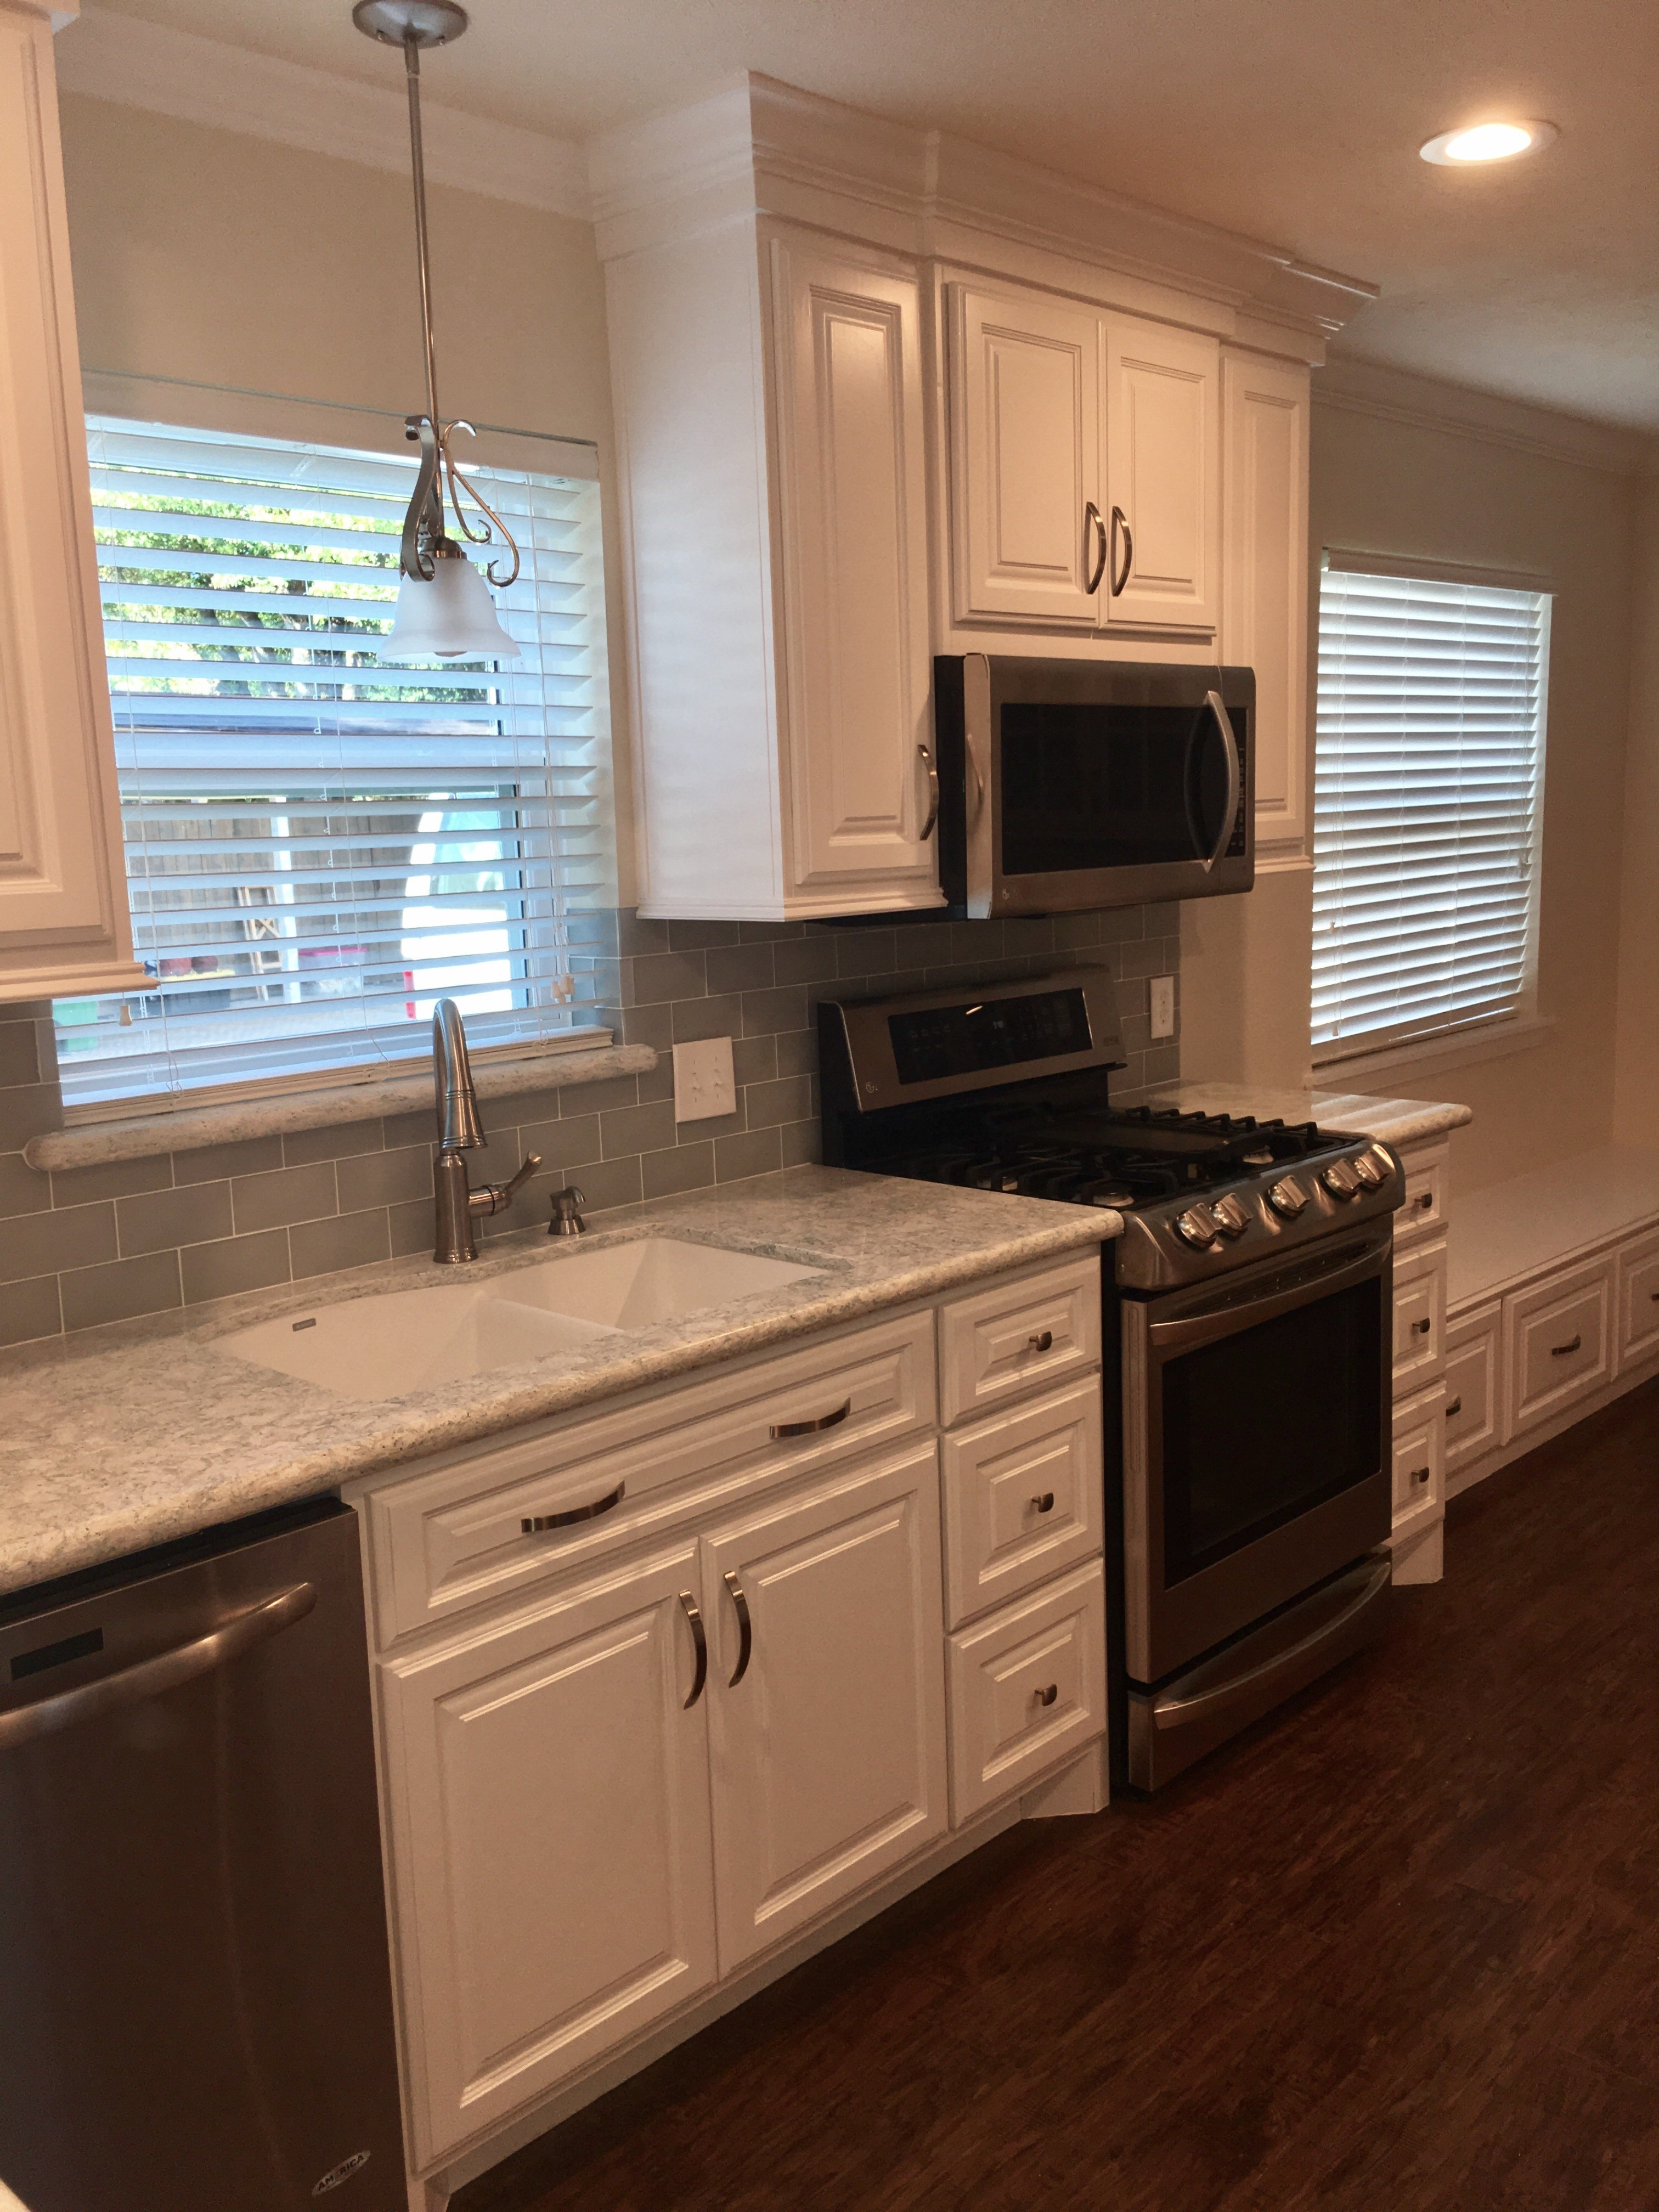 Kitchen countertops and cabinets after